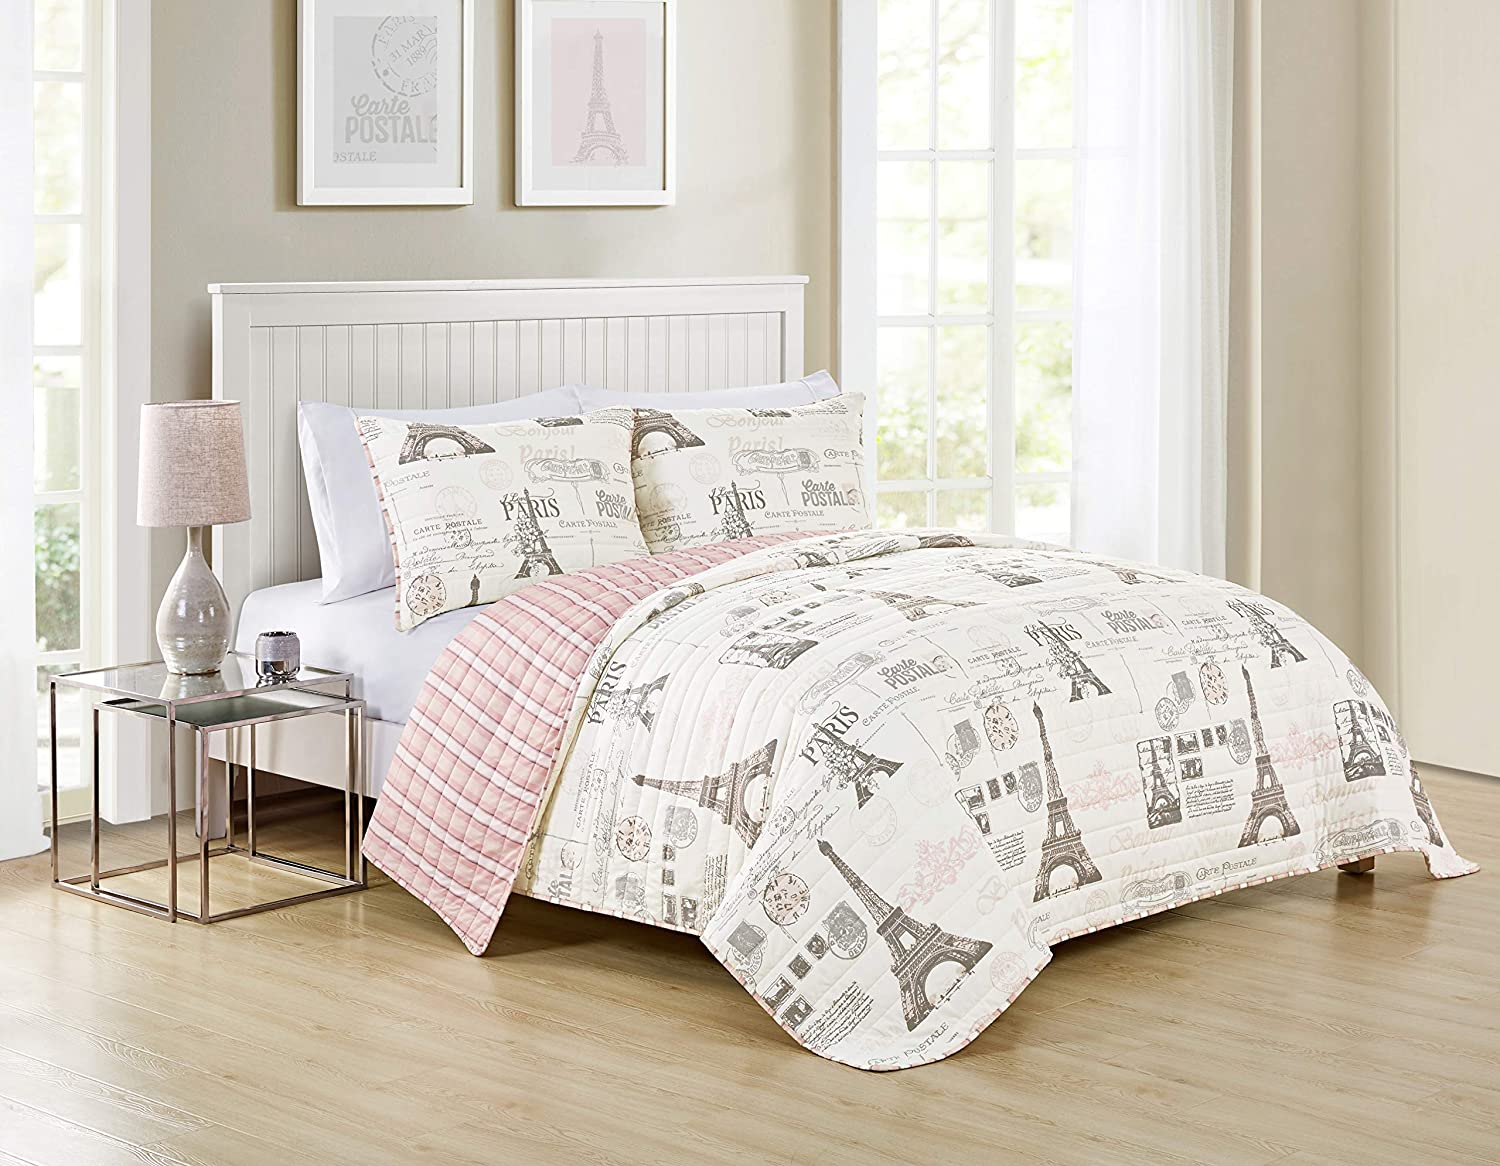 VCNY Home Carte Postal Collection Quilt Set - Ultra-Soft Reversible Coverlet Bedding - Lightweight, Cool, and Breathable Bedspread, Machine Washable, King, Grey